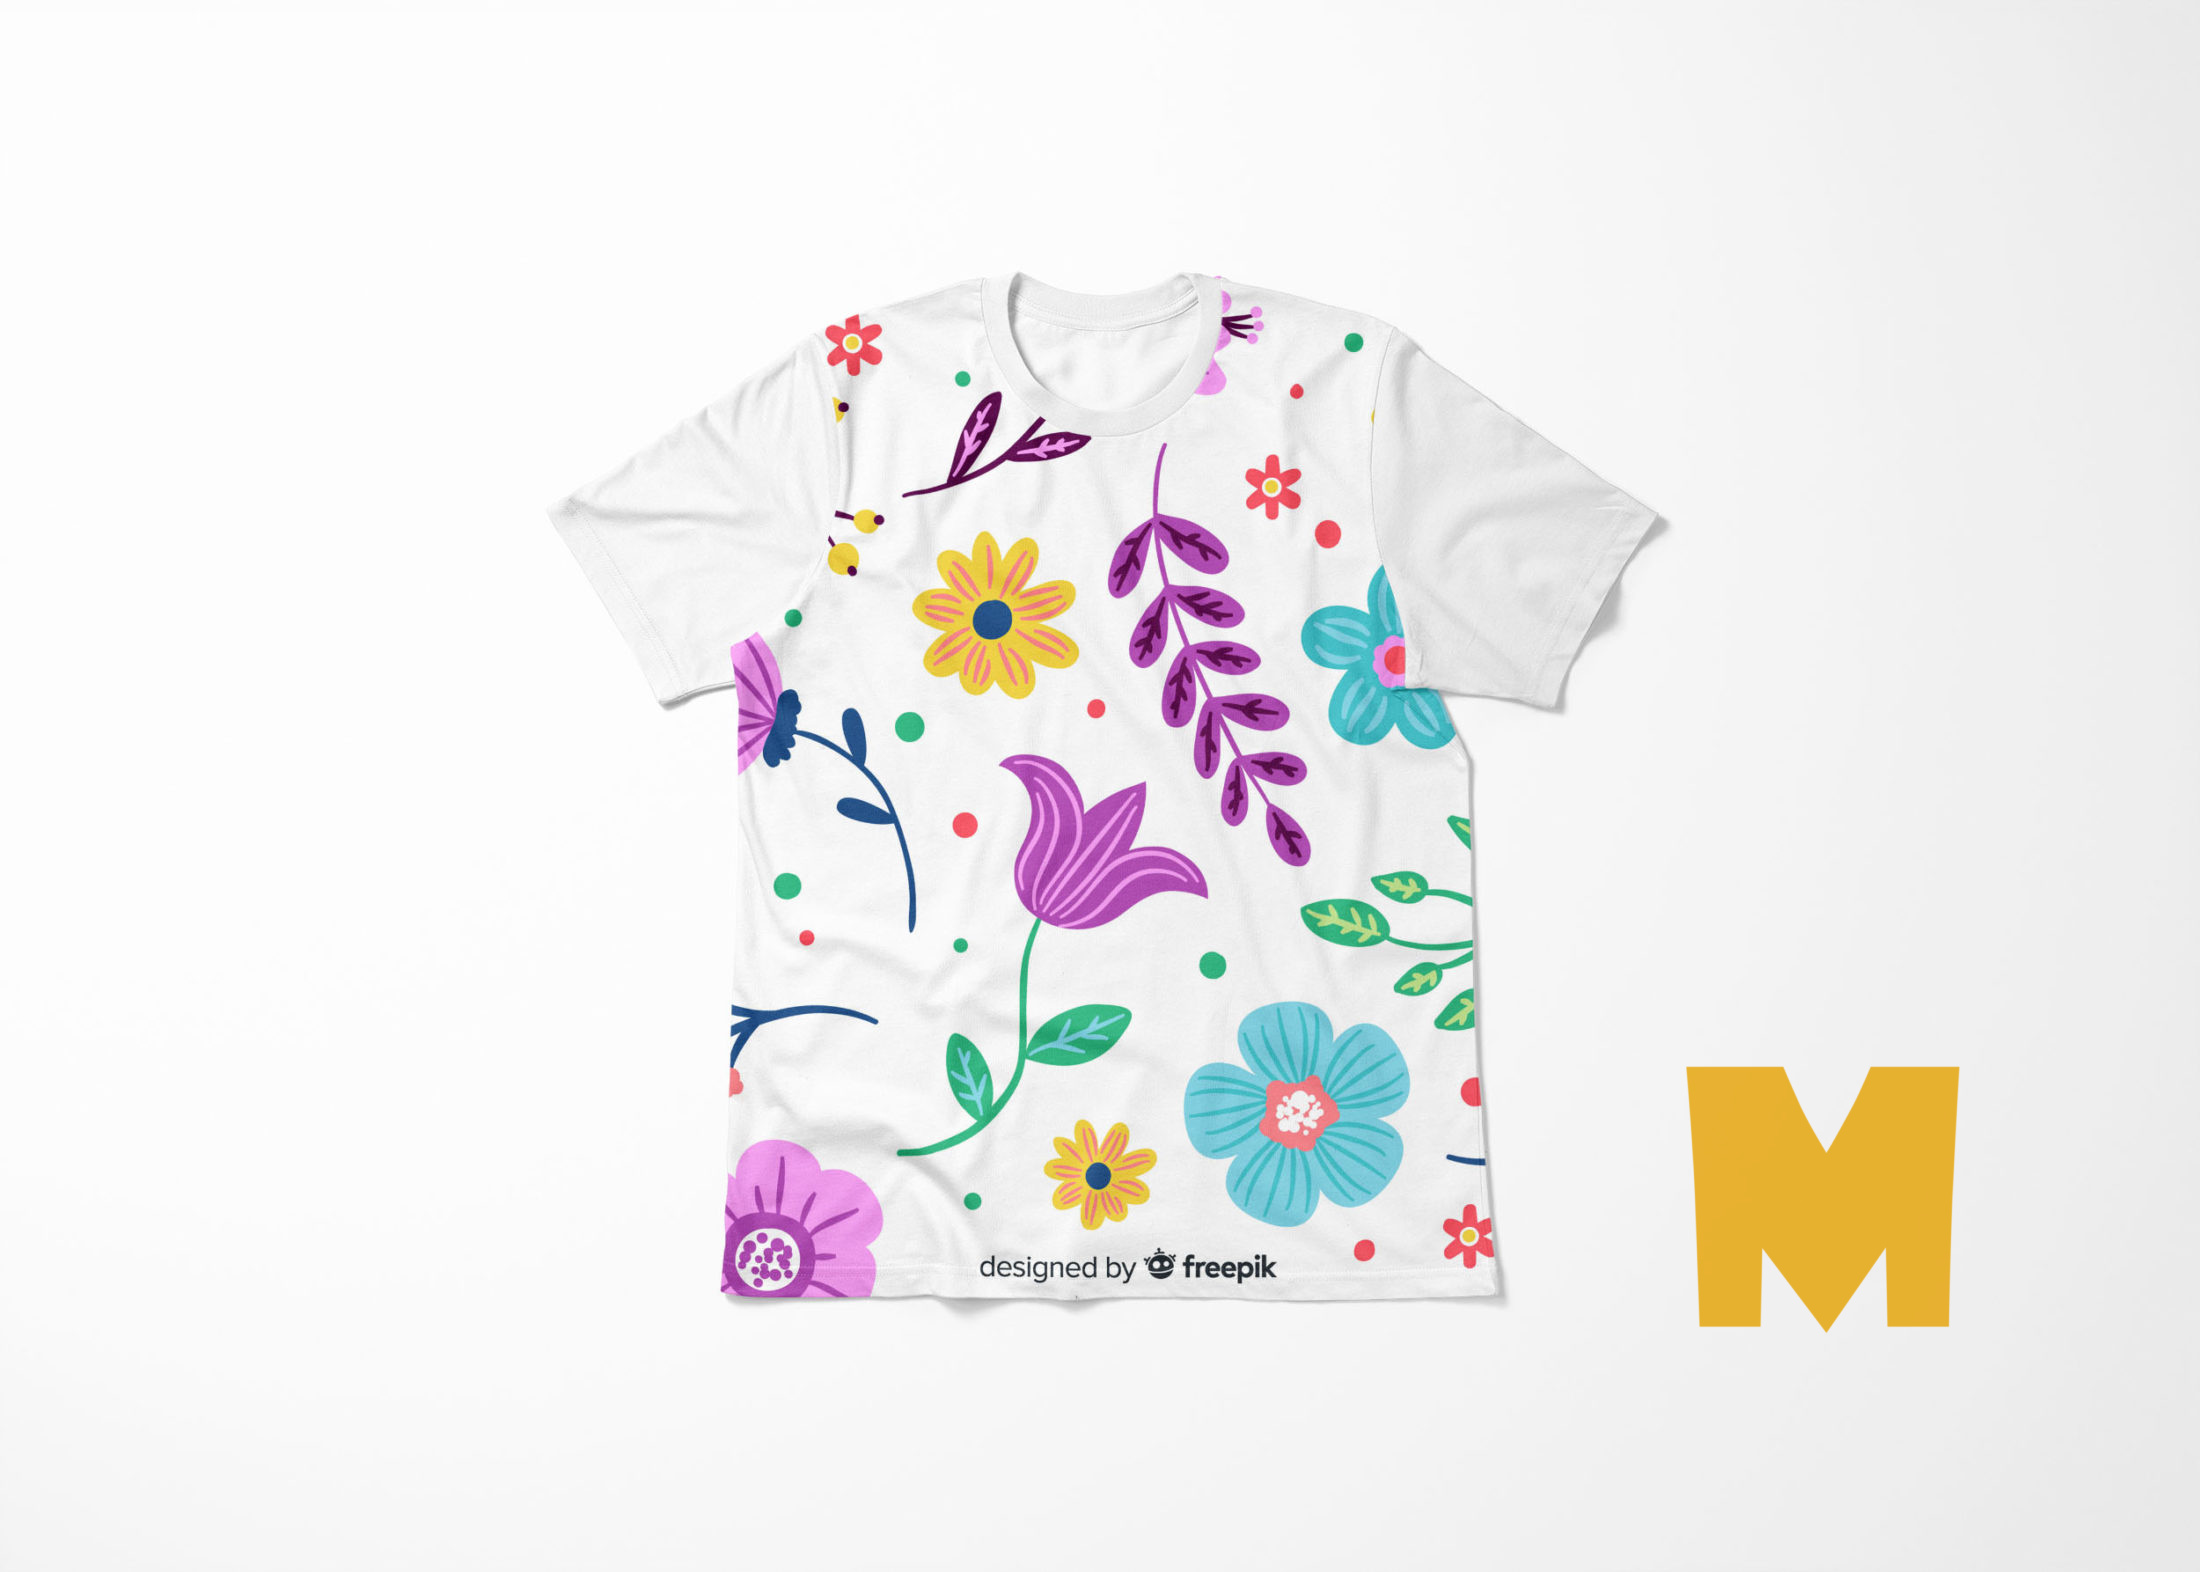 Coloured T-shirt Mockup